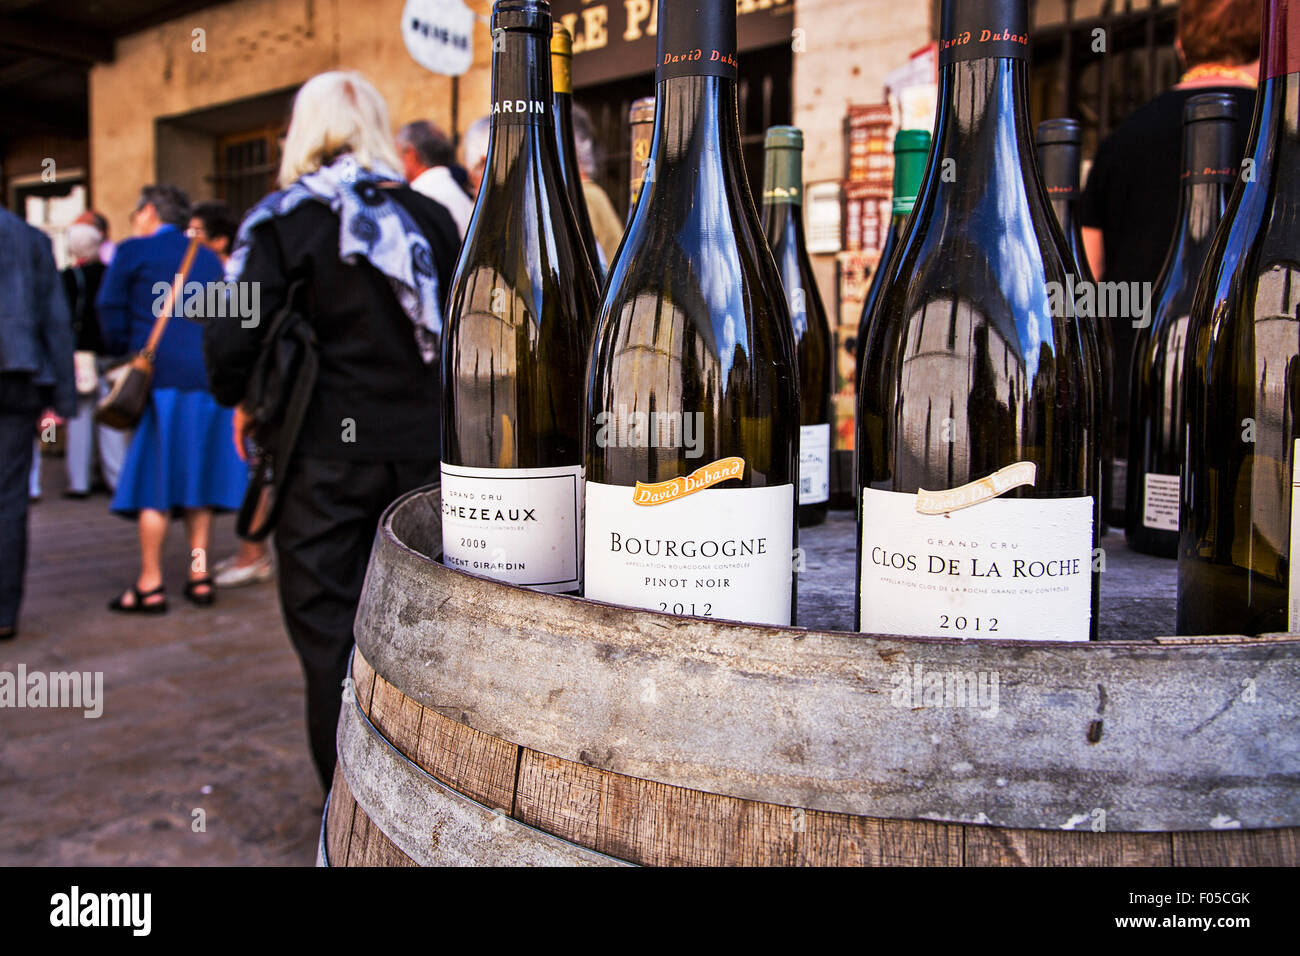 Wine bottles on display at a shop in Beaune hint at the world famous vintages for sale there. - Stock Image